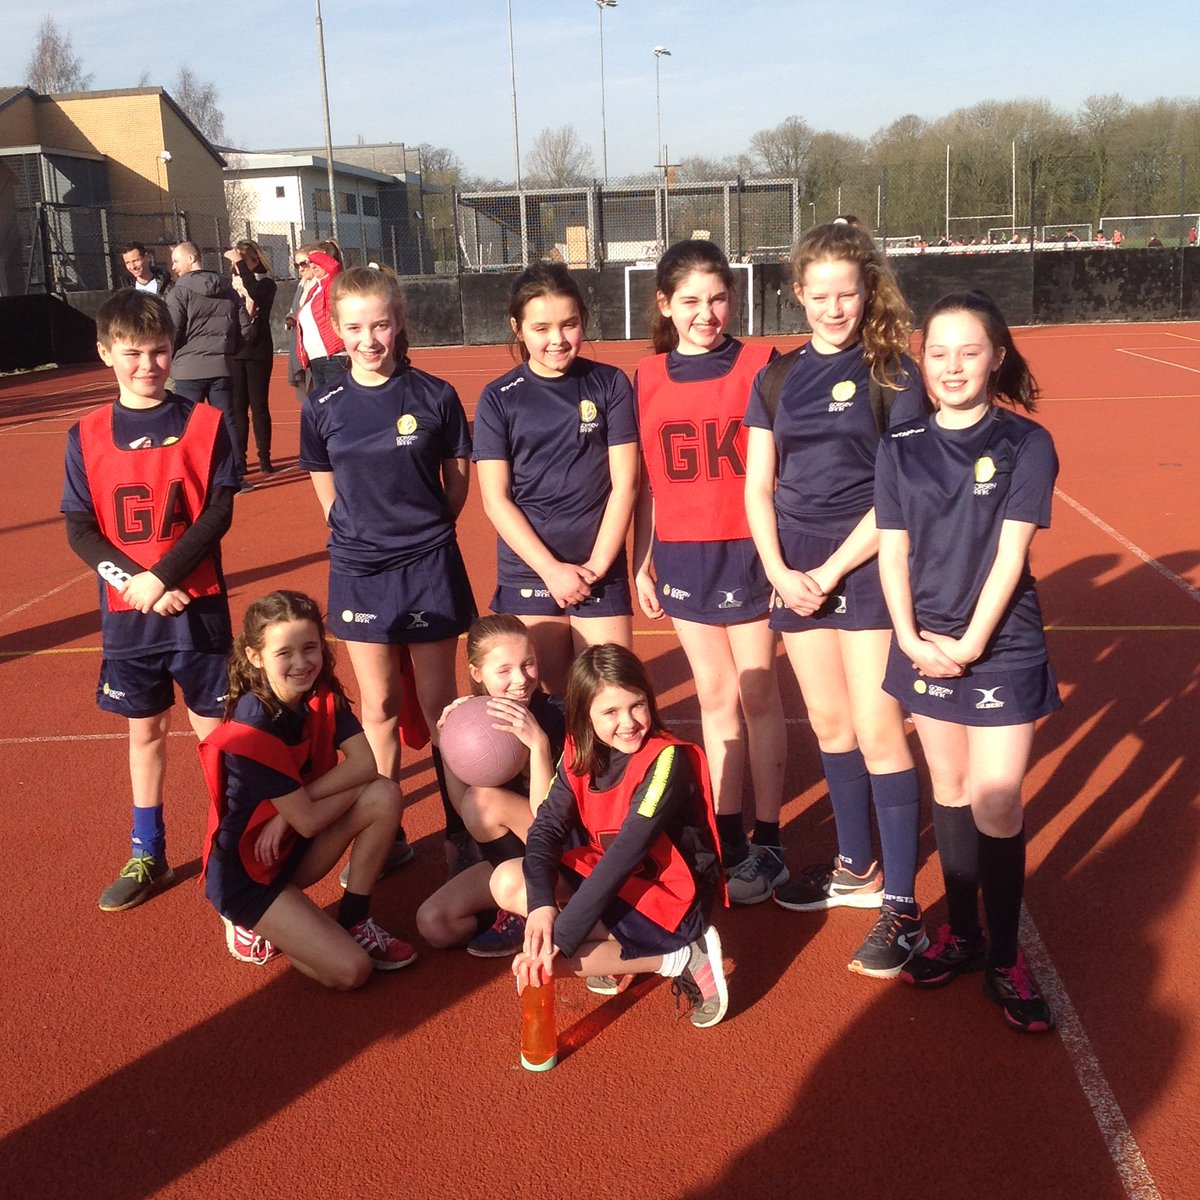 test Twitter Media - A huge well done to our Netball team today! Thank you to everyone that came down to show their support! 🏅 #gorseype @GorseyBank https://t.co/uQCRl1AG7v